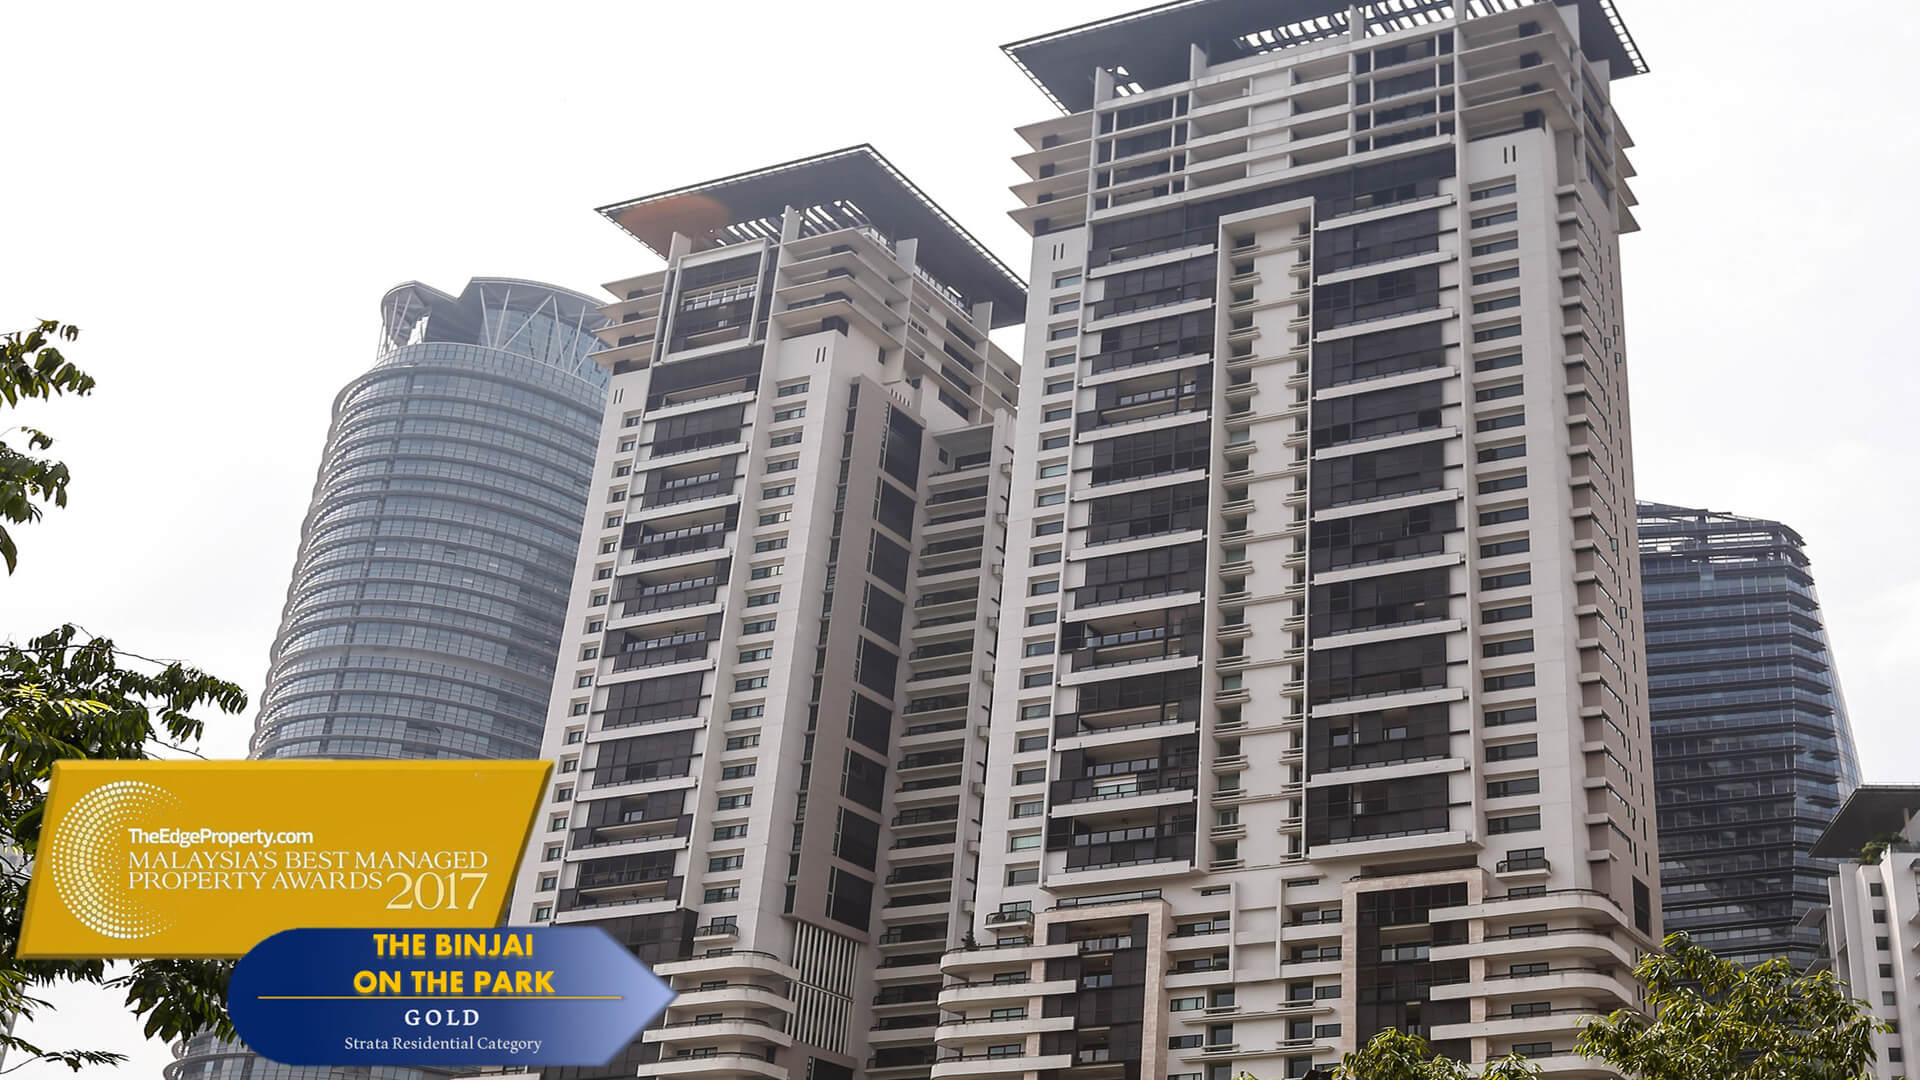 2017 Edgeprop - 1 Gold (The Binjai On the Park)